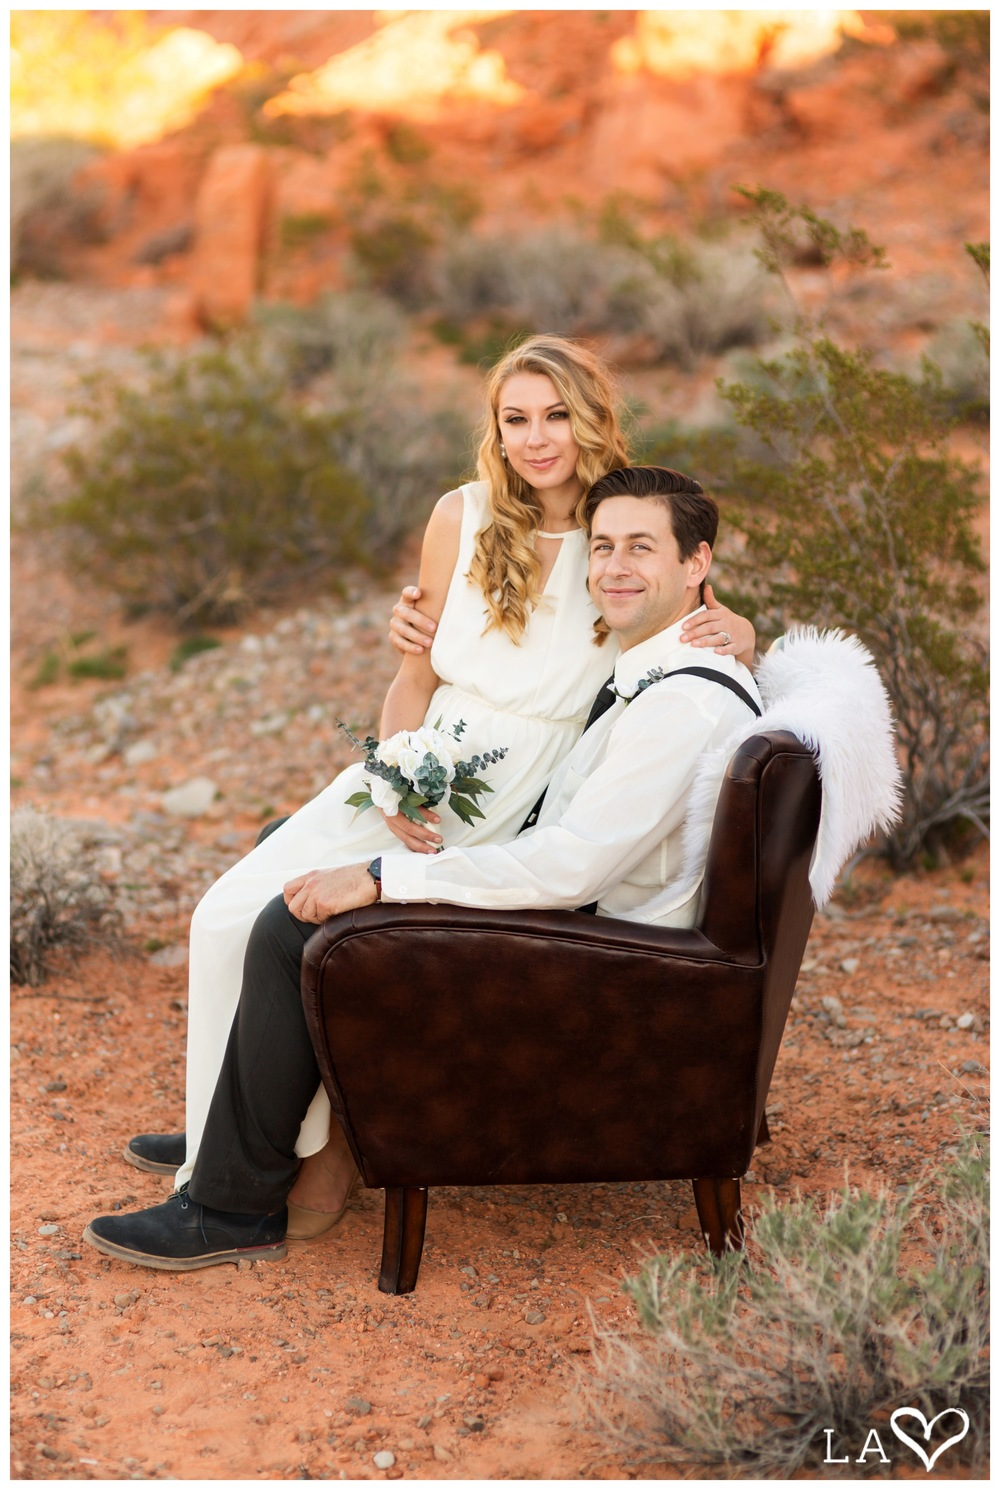 Las Vegas Wedding Photographer - Lake Mead - Daniella and Drew-25.jpg